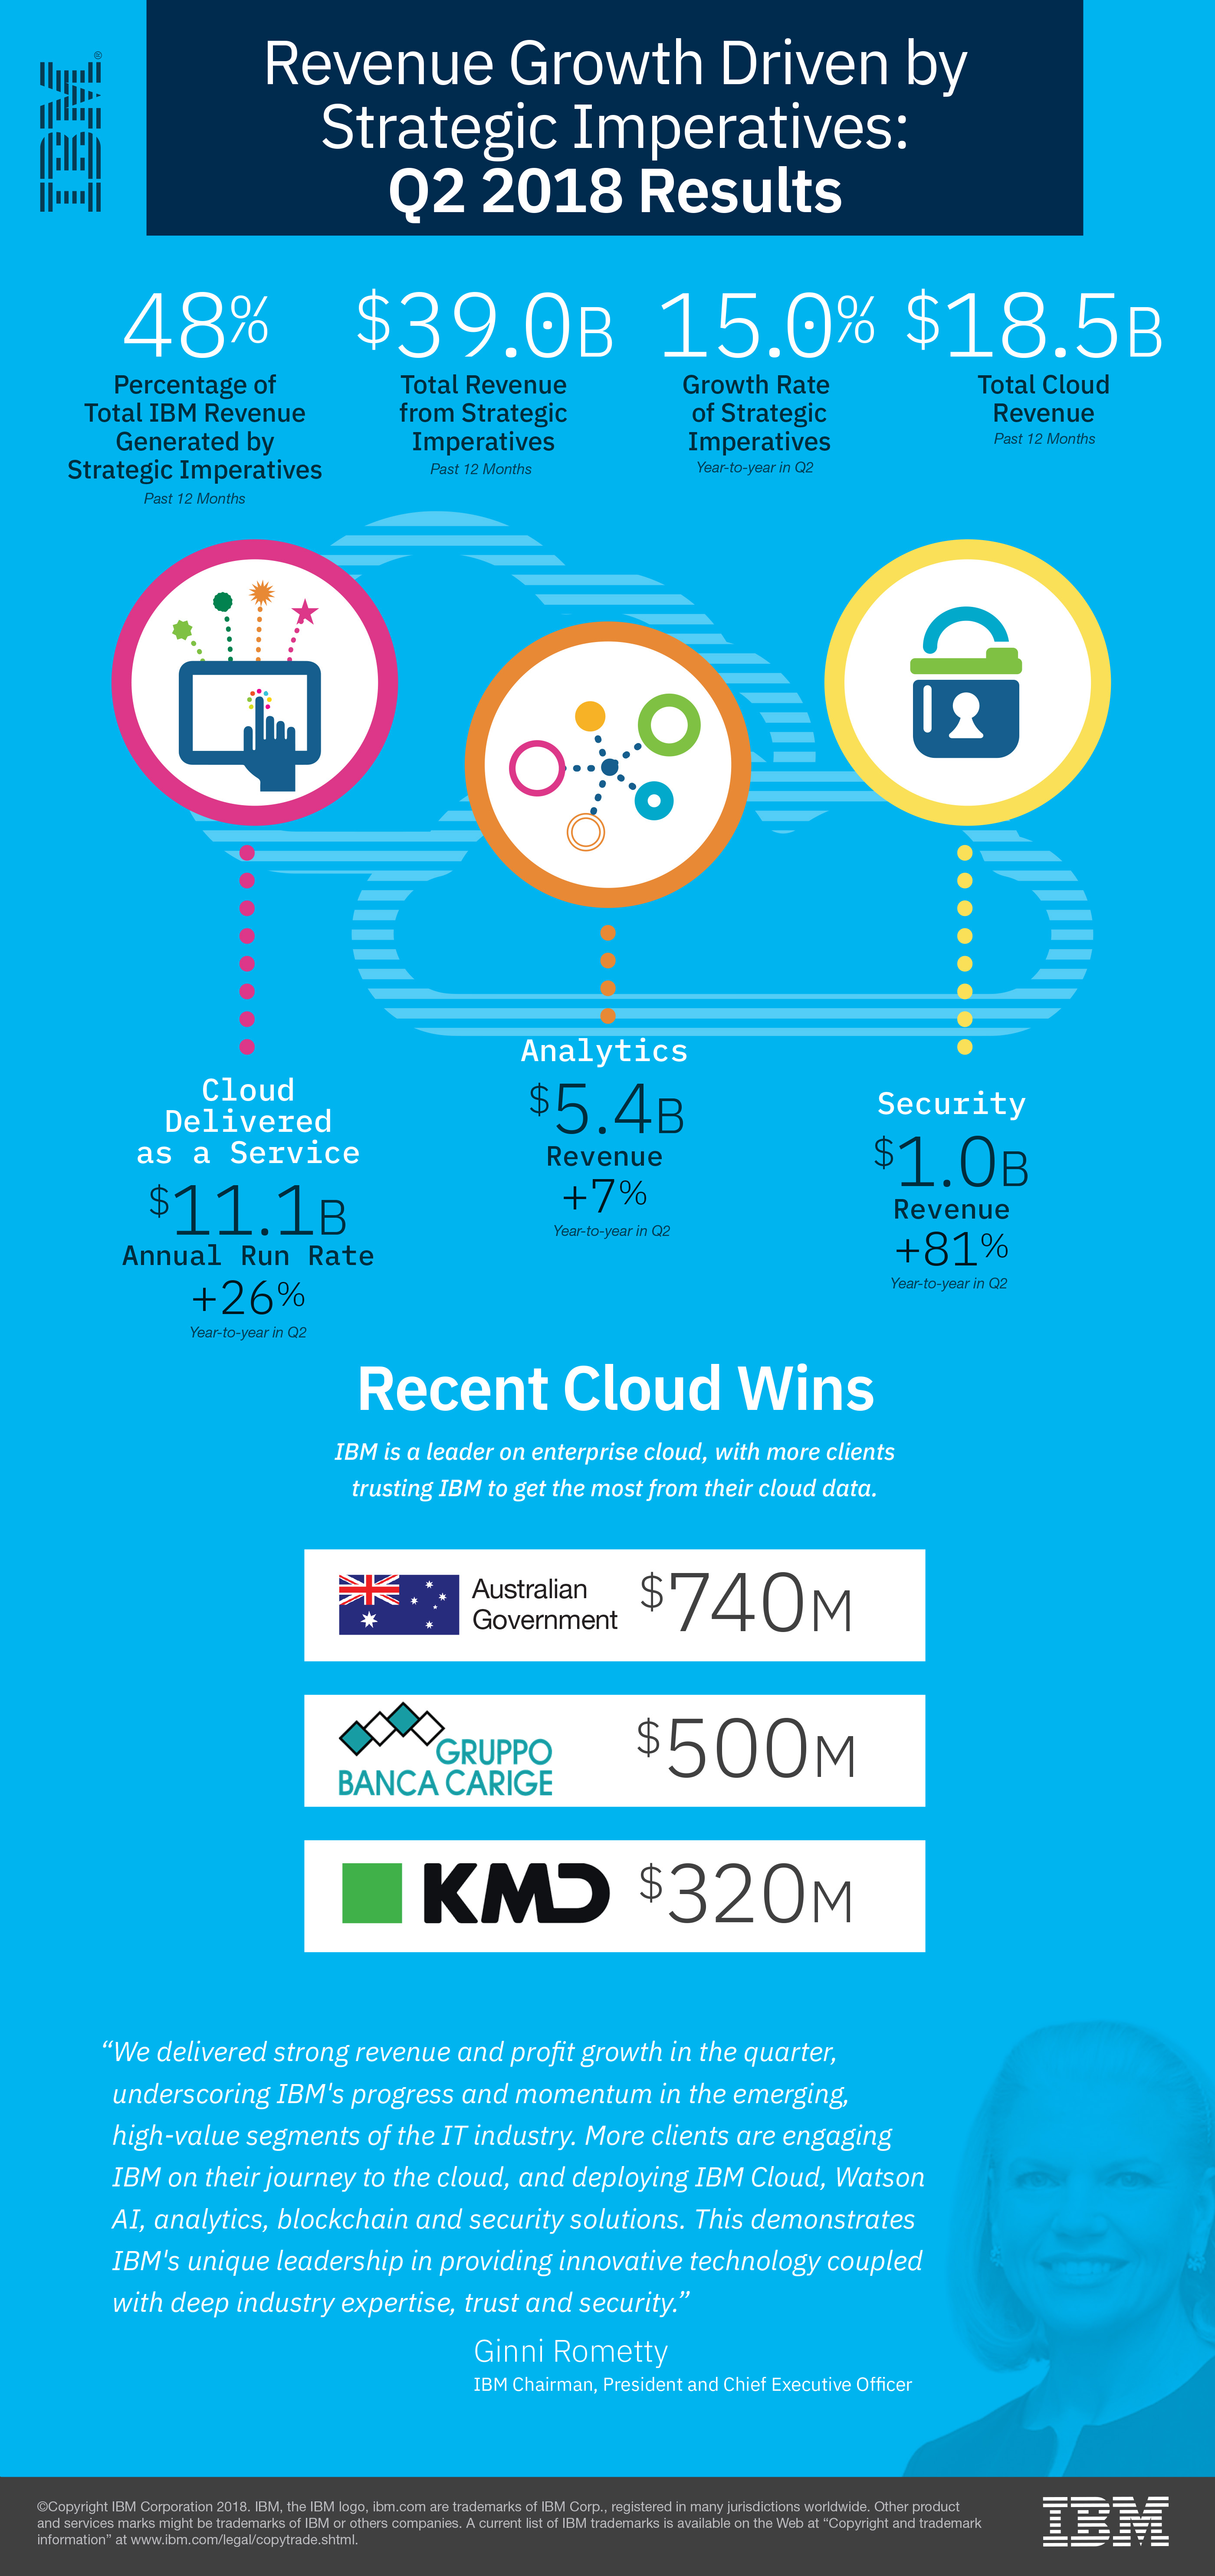 ibm.com - Denis Kennelly - Building the cloud for business - Cloud computing news